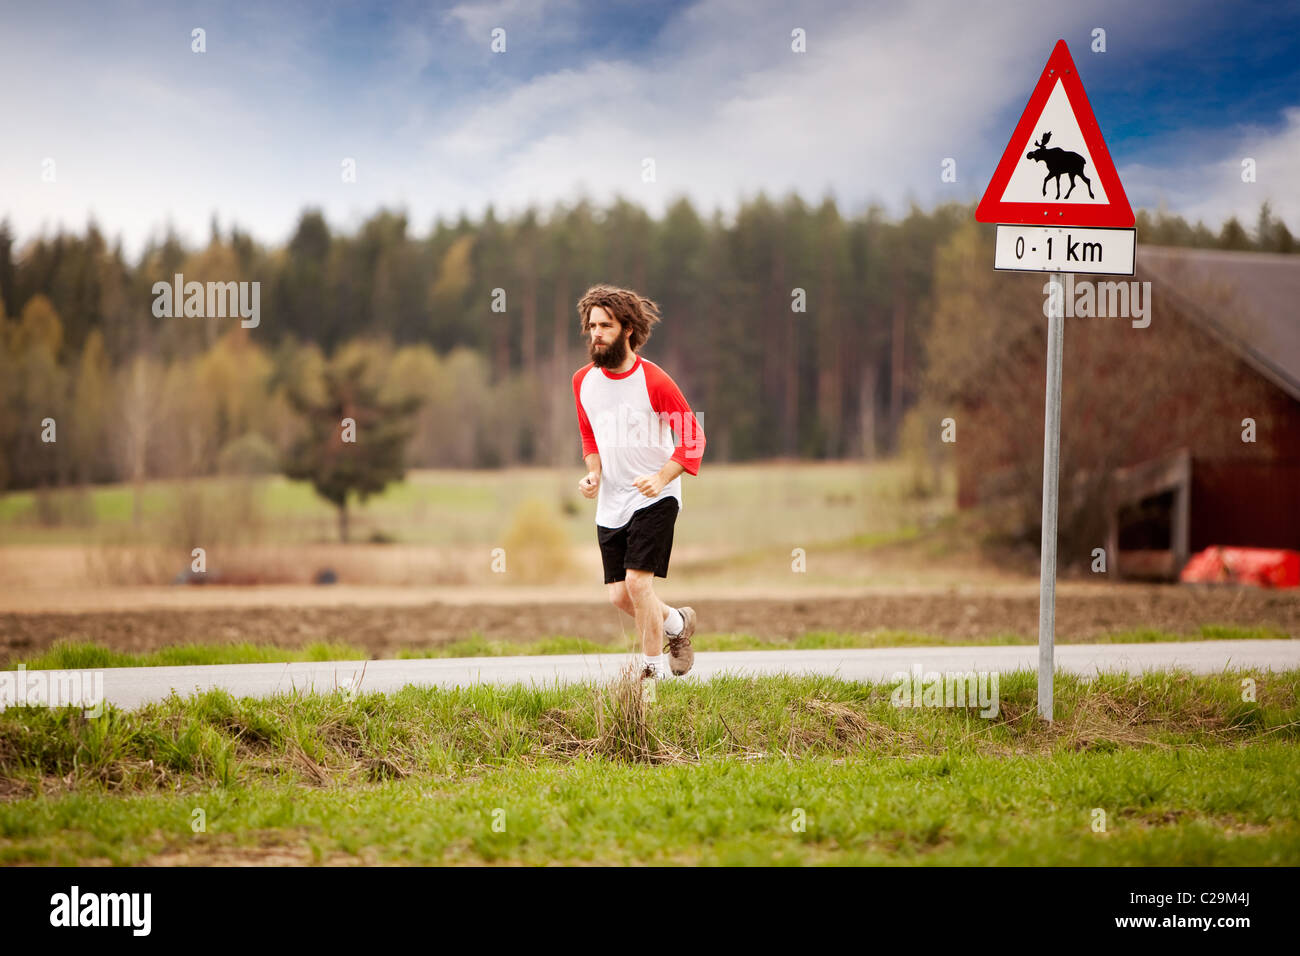 A runner with long hair and beard jogging in the country - Stock Image